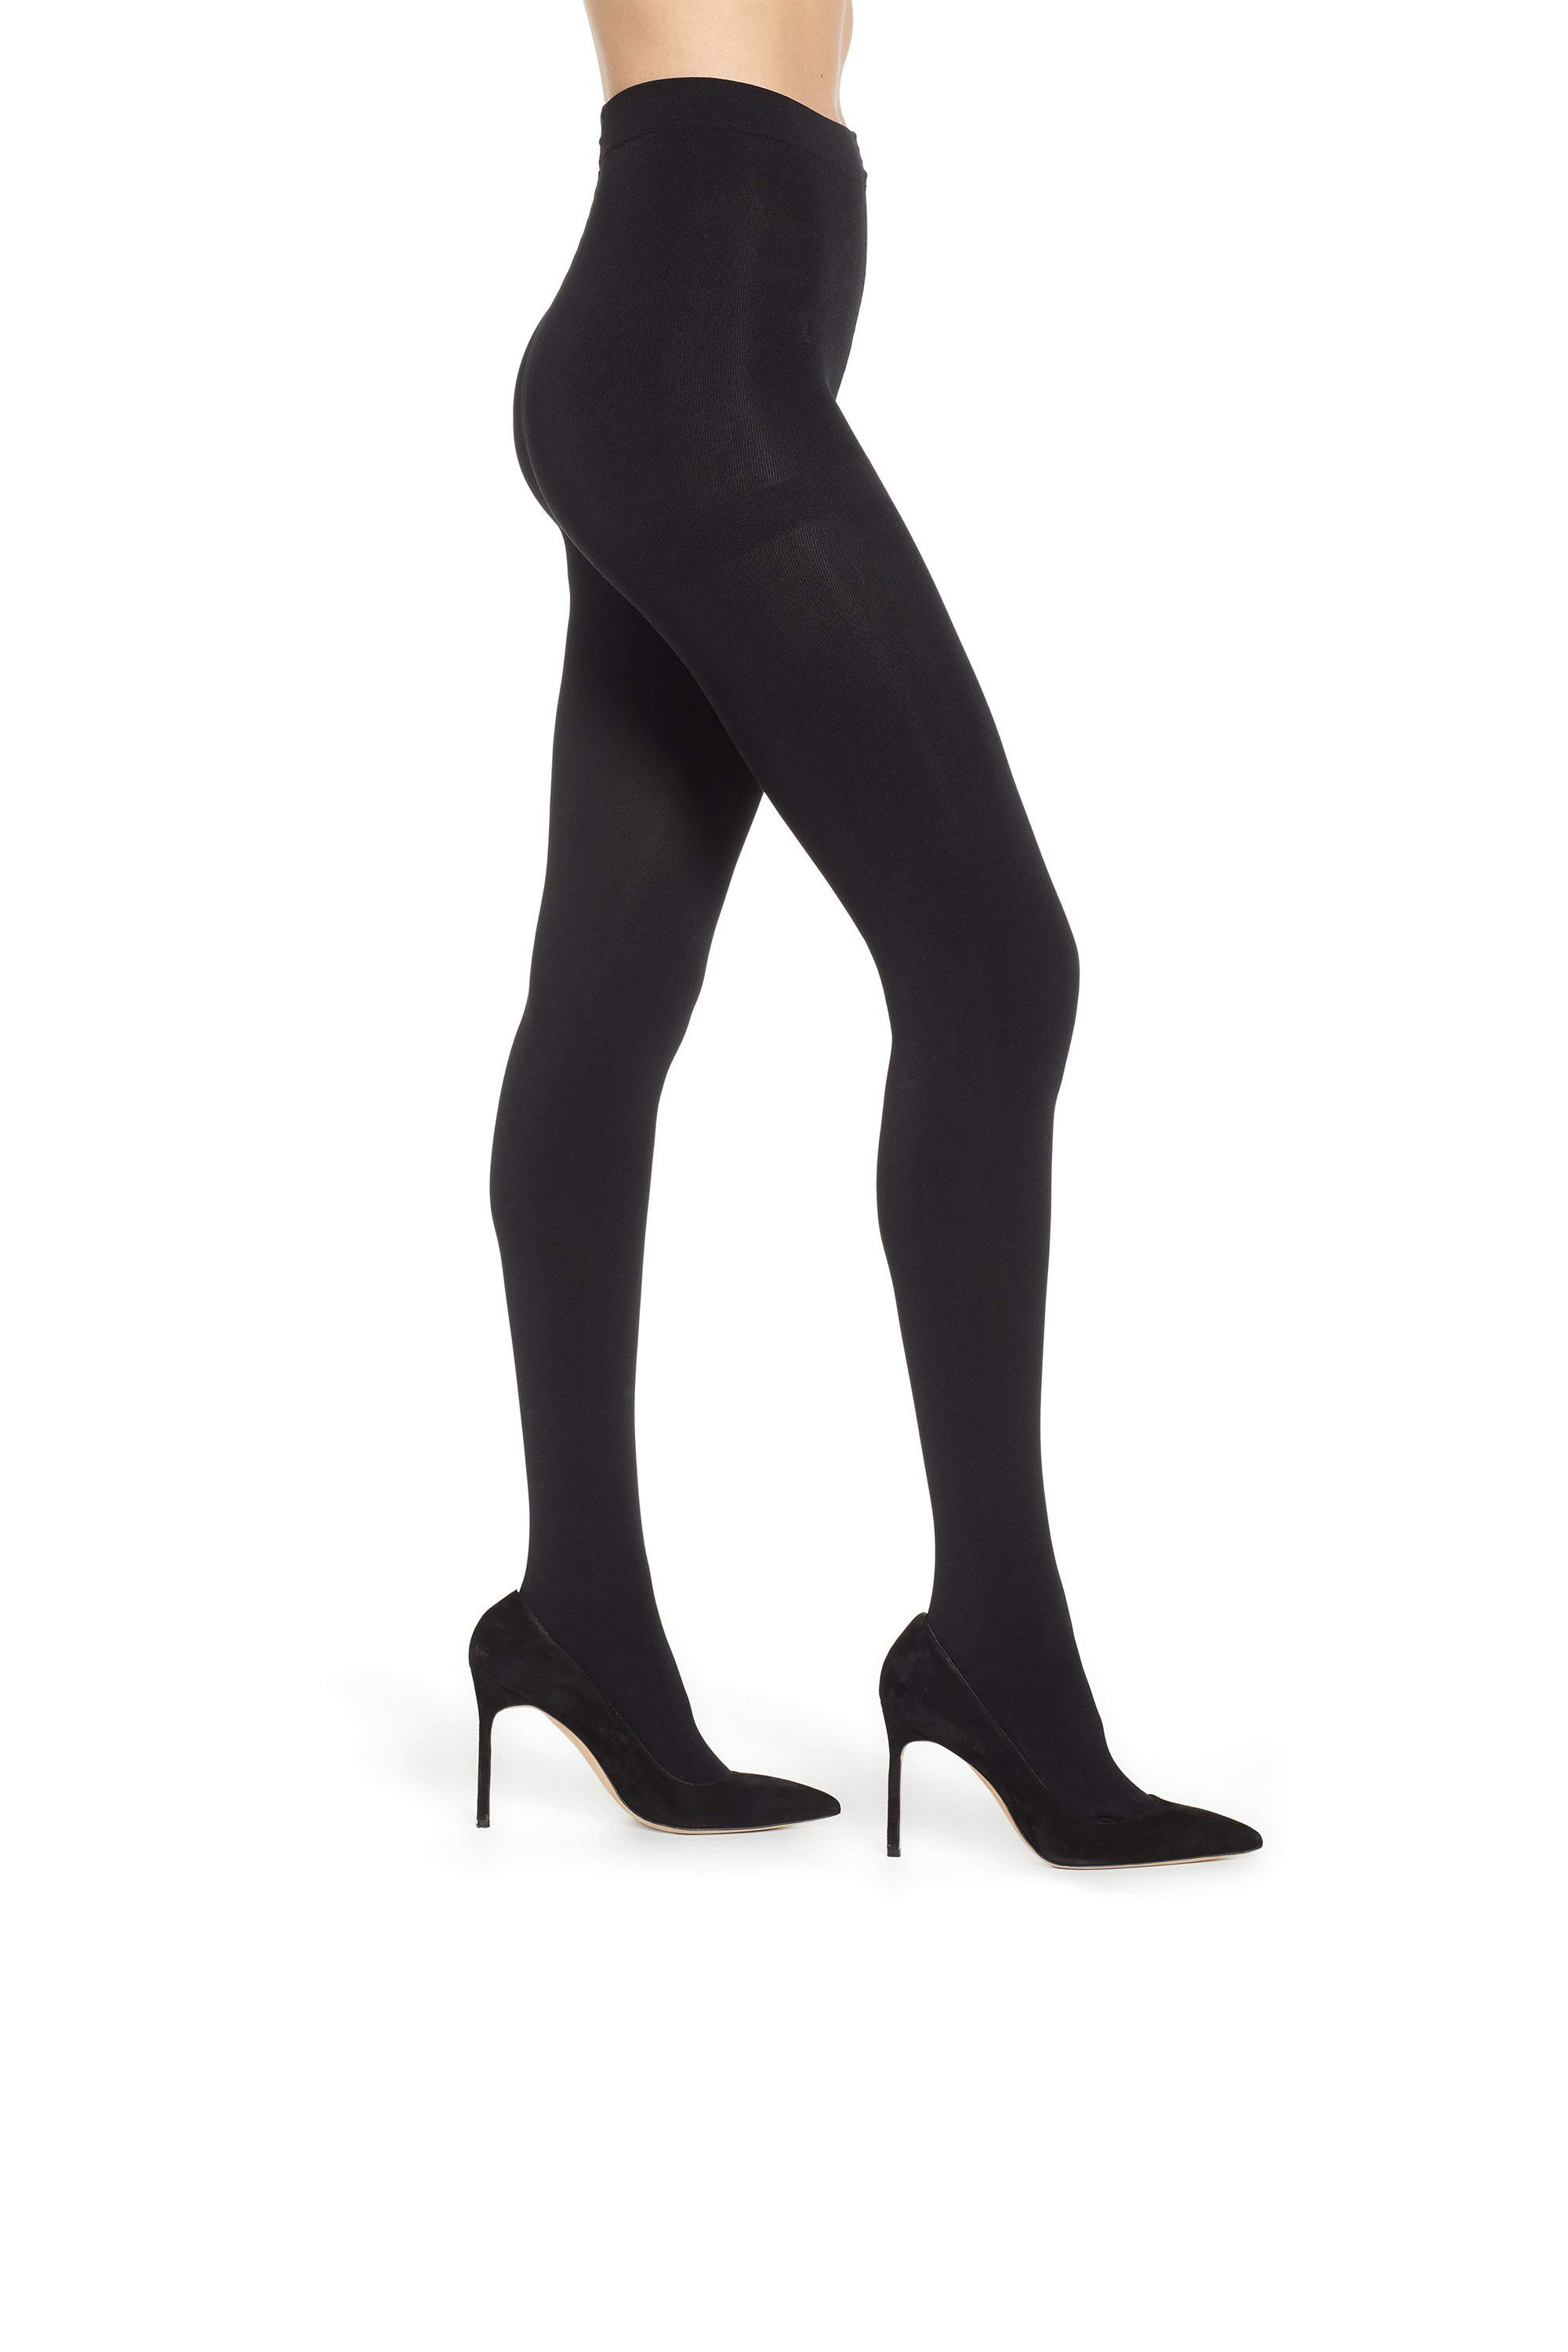 16700929c257f8 Best Black Tights for Winter and Cold Weather